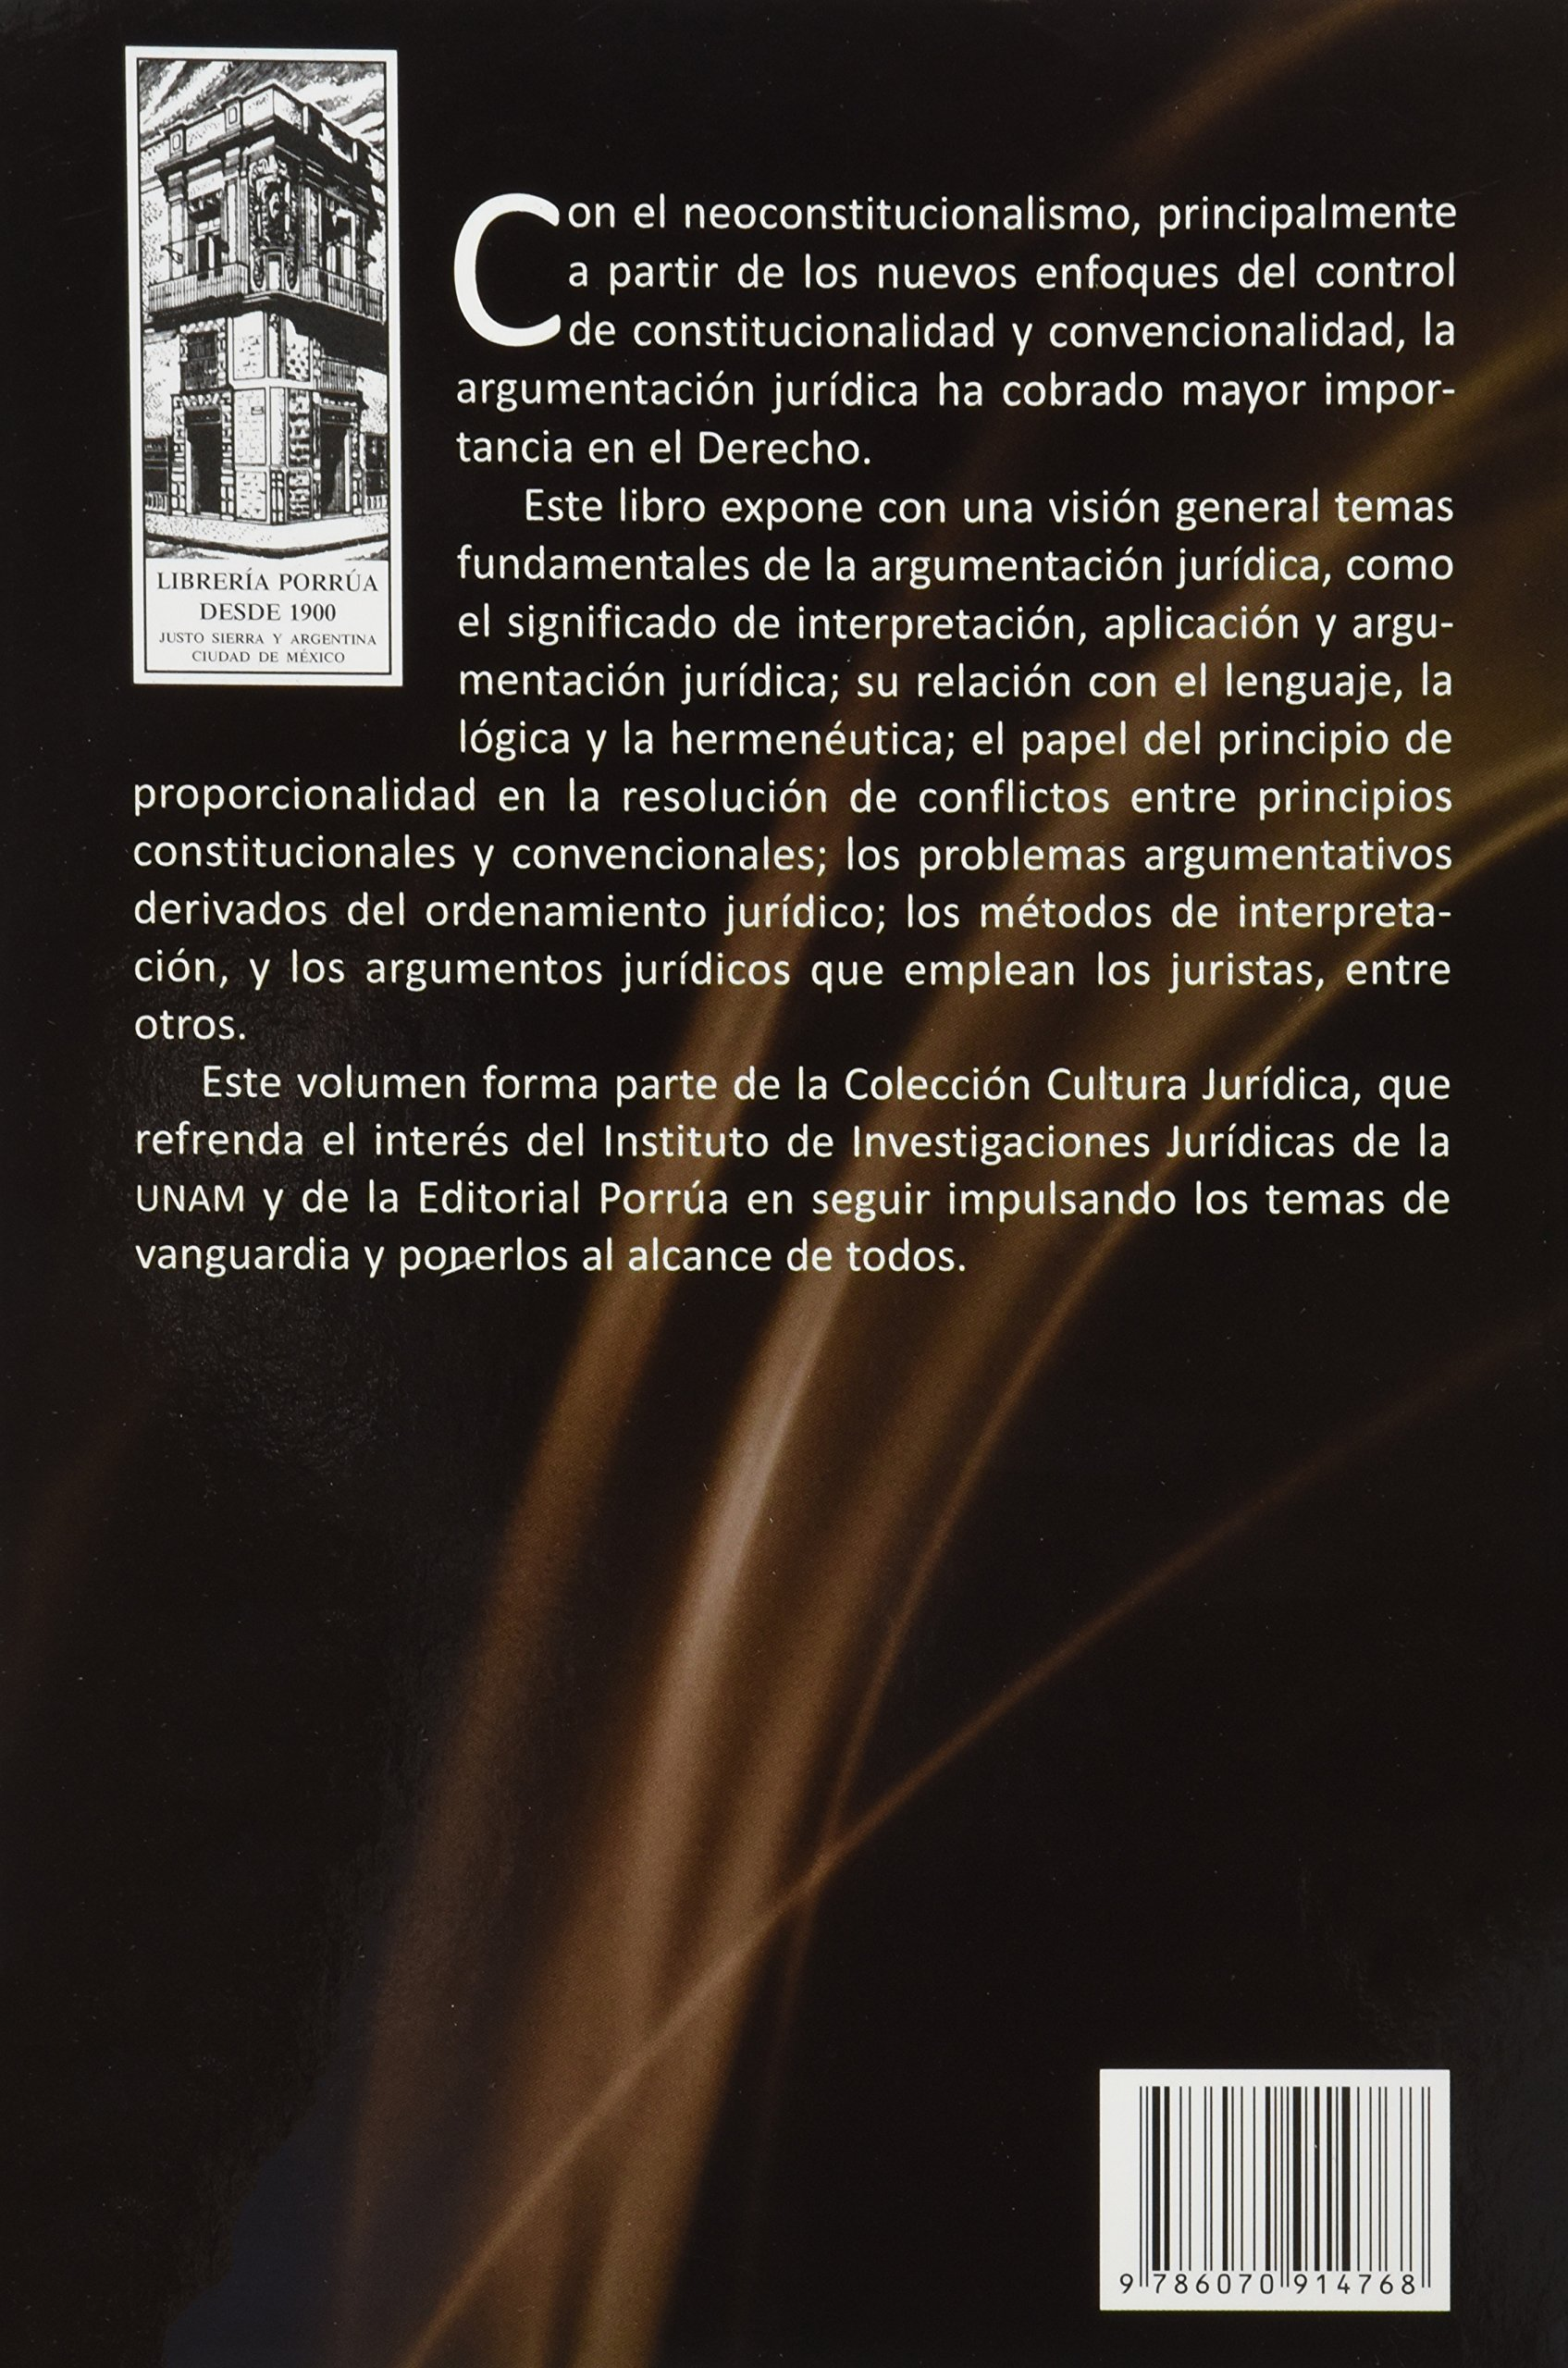 MANUAL DE ARGUMENTACION JURIDICA: JAIME CARDENAS GRACIA: 9786070914768: Amazon.com: Books